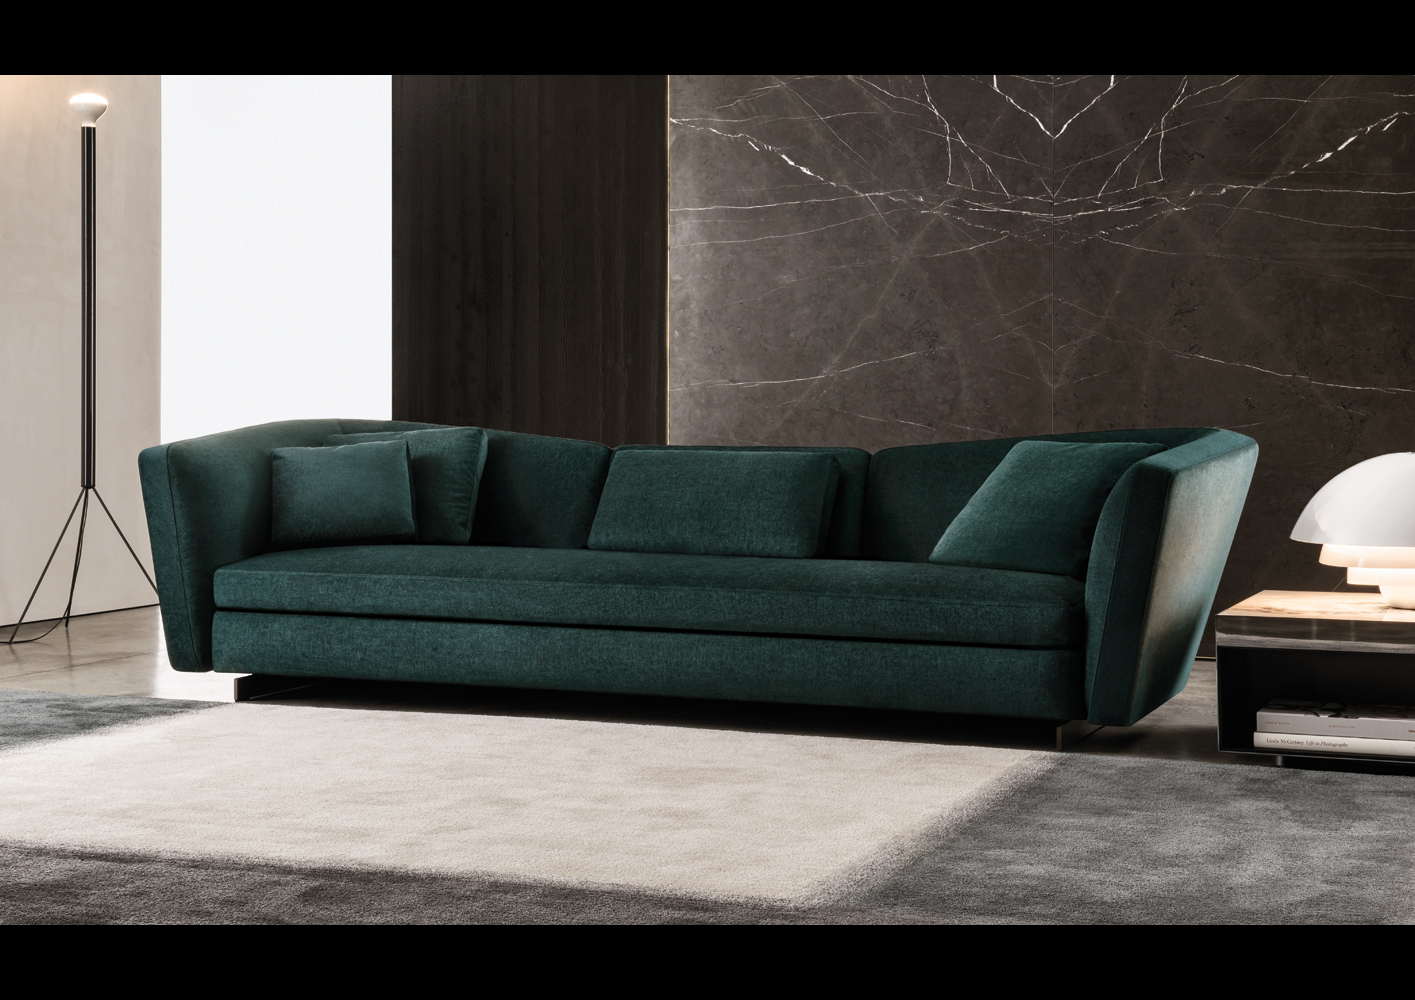 sofa covers for leather large indian throws seymour   designed by rodolfo dordoni, minotti ...